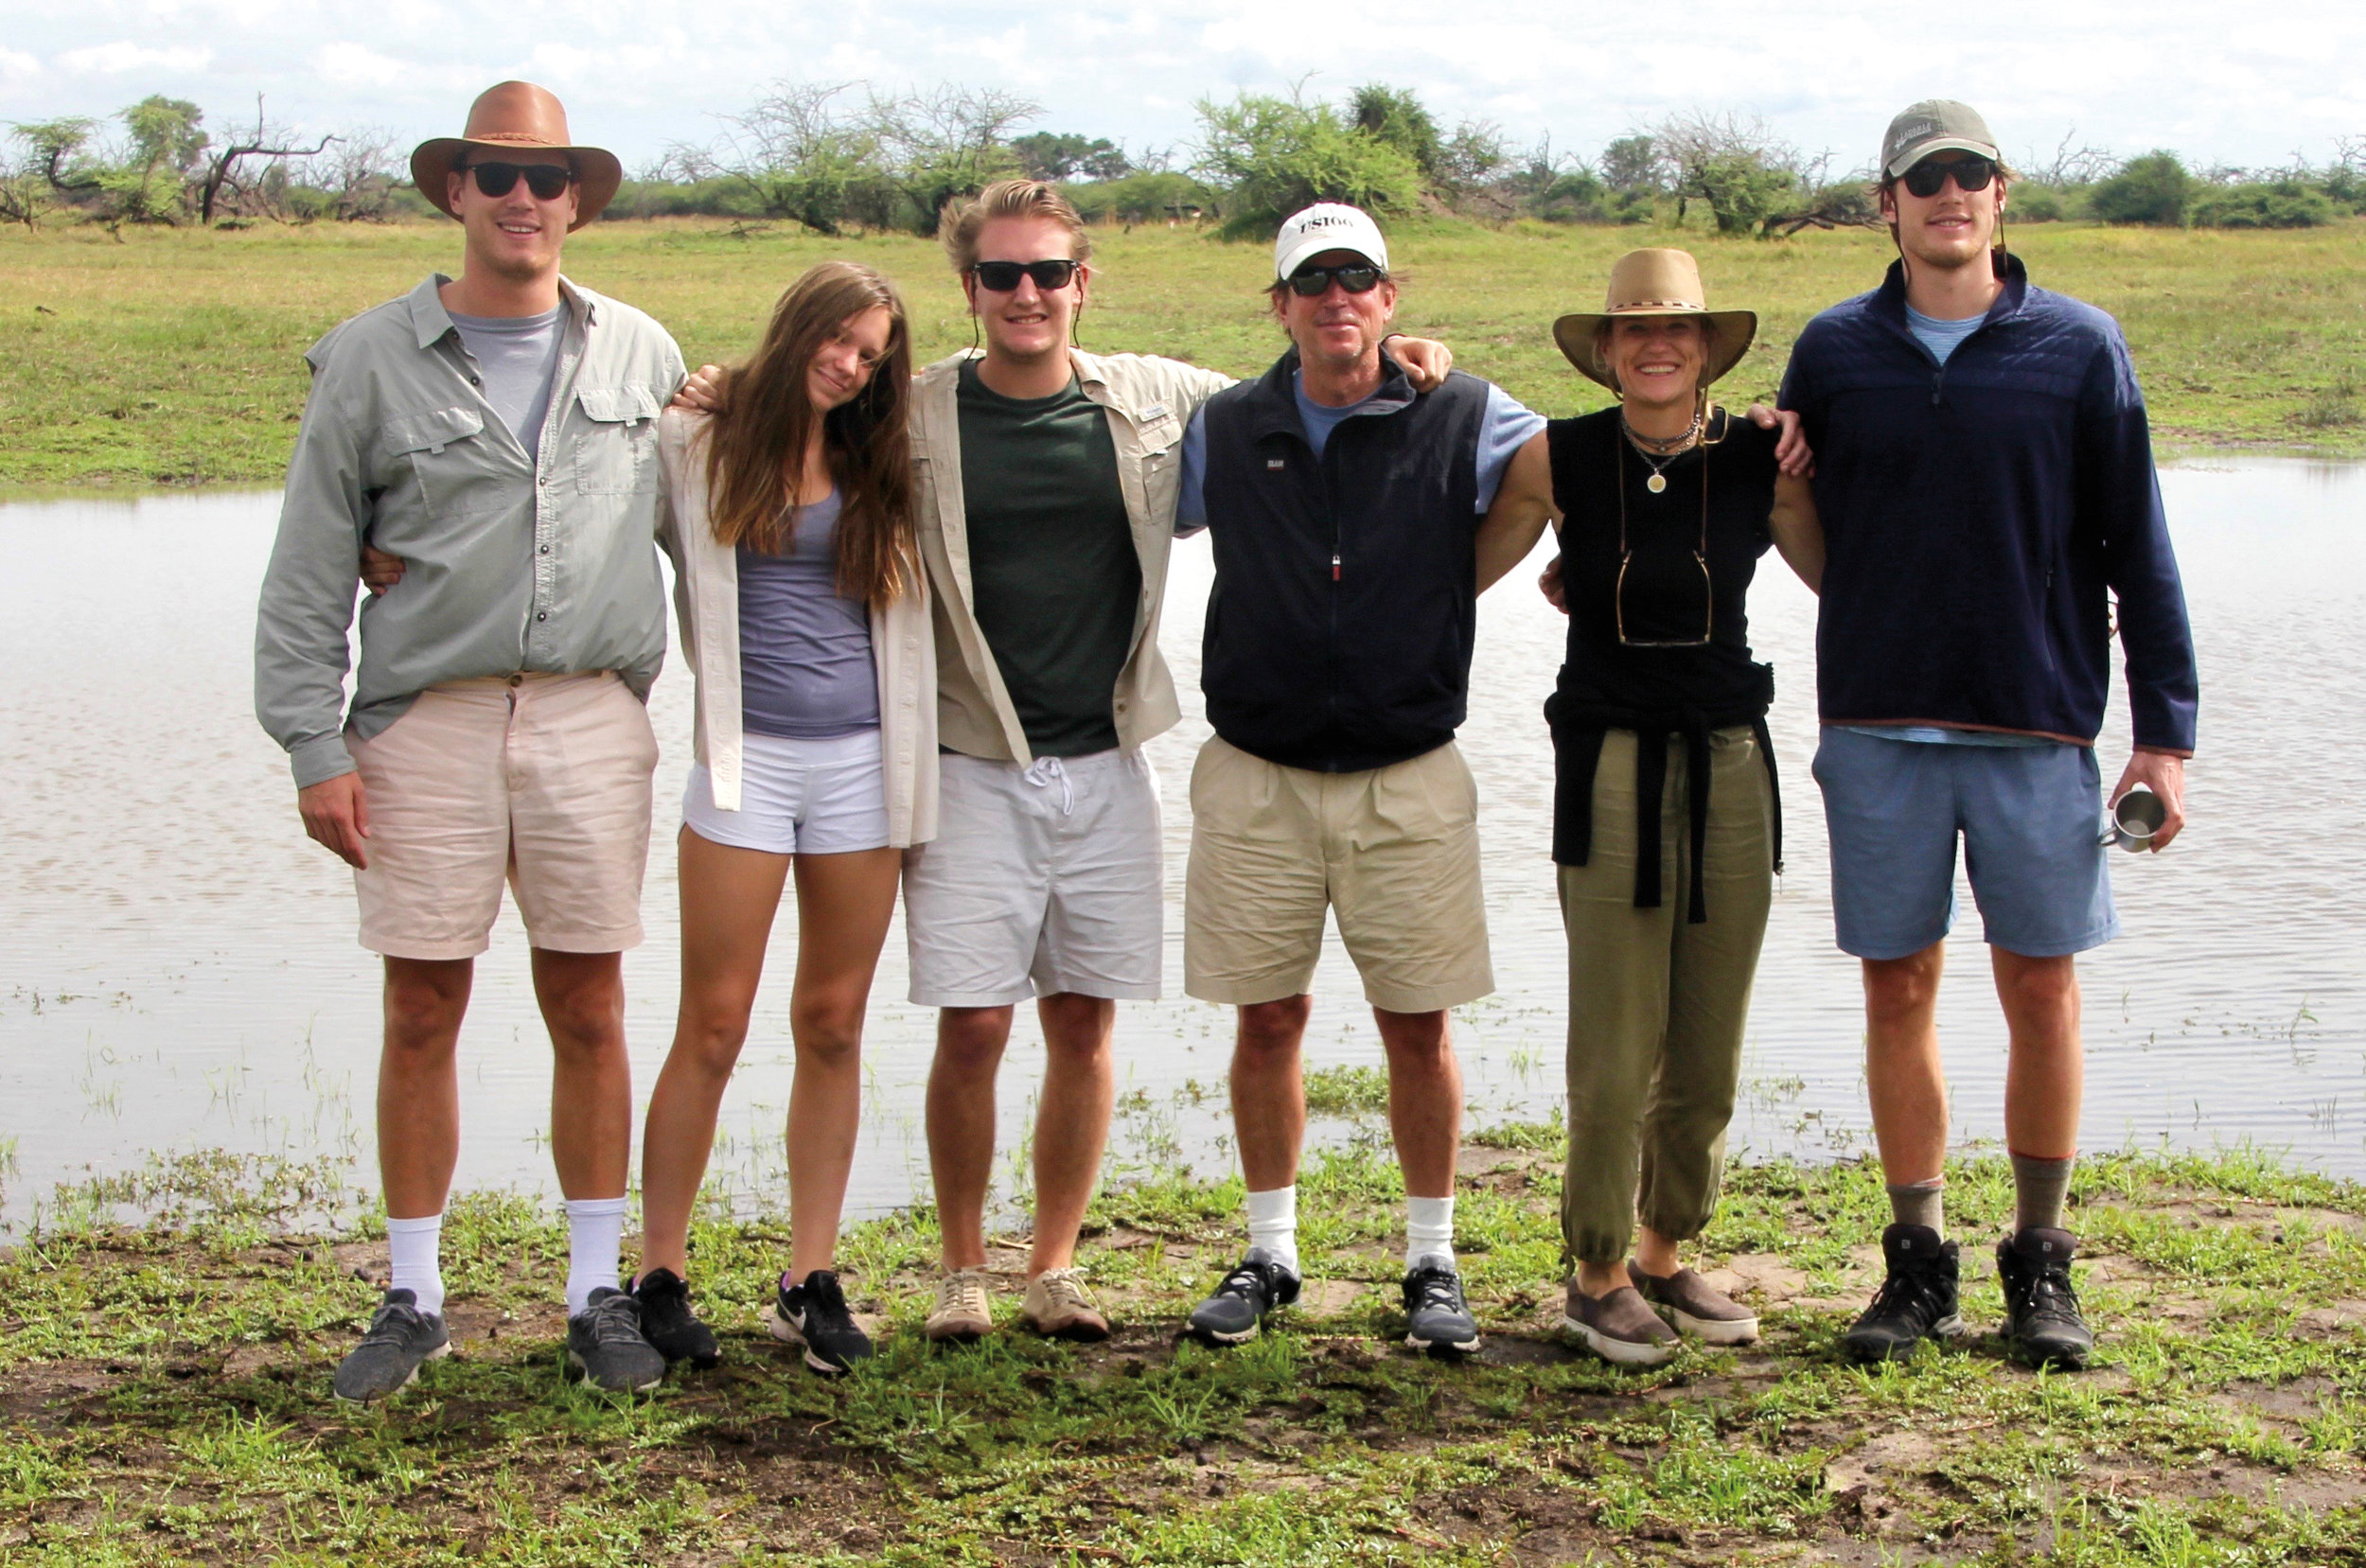 Allison Icy Frantz '83 celebrated her 25th wedding anniversary in South Africa and Botswana with her family.